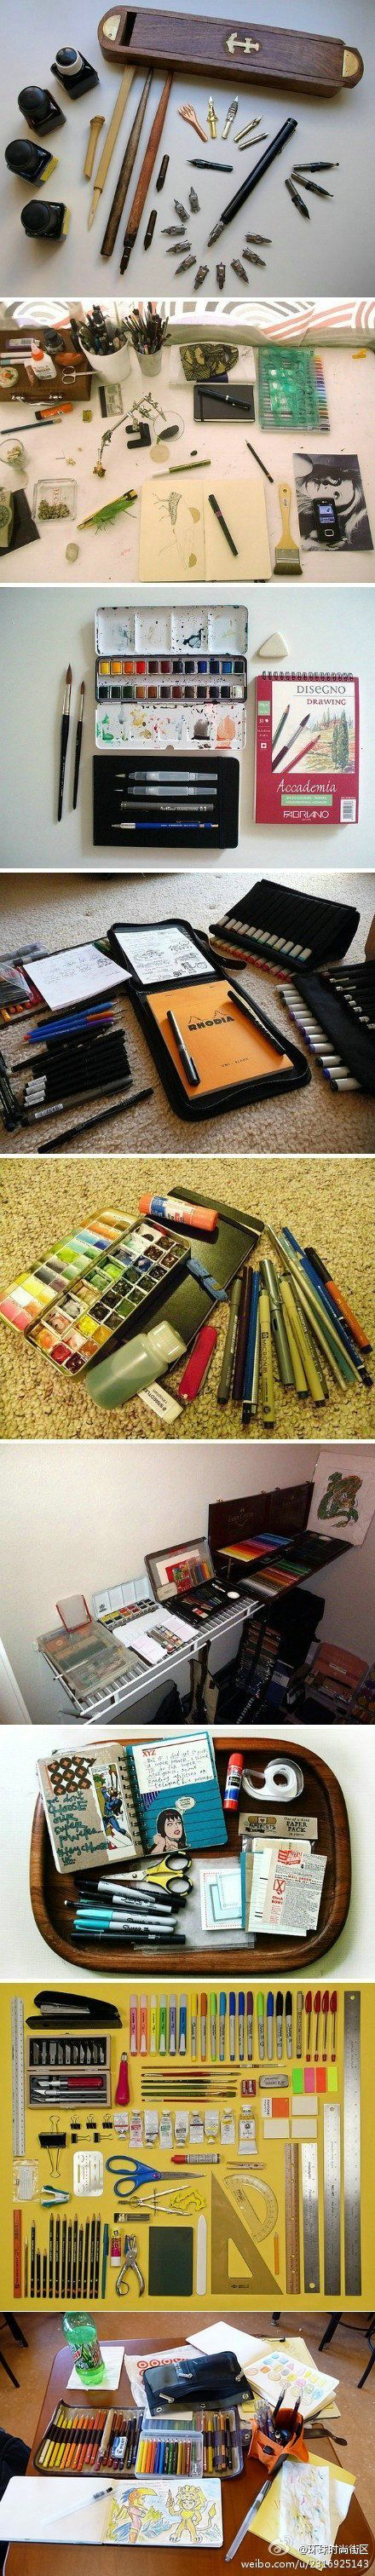 drawing tools!